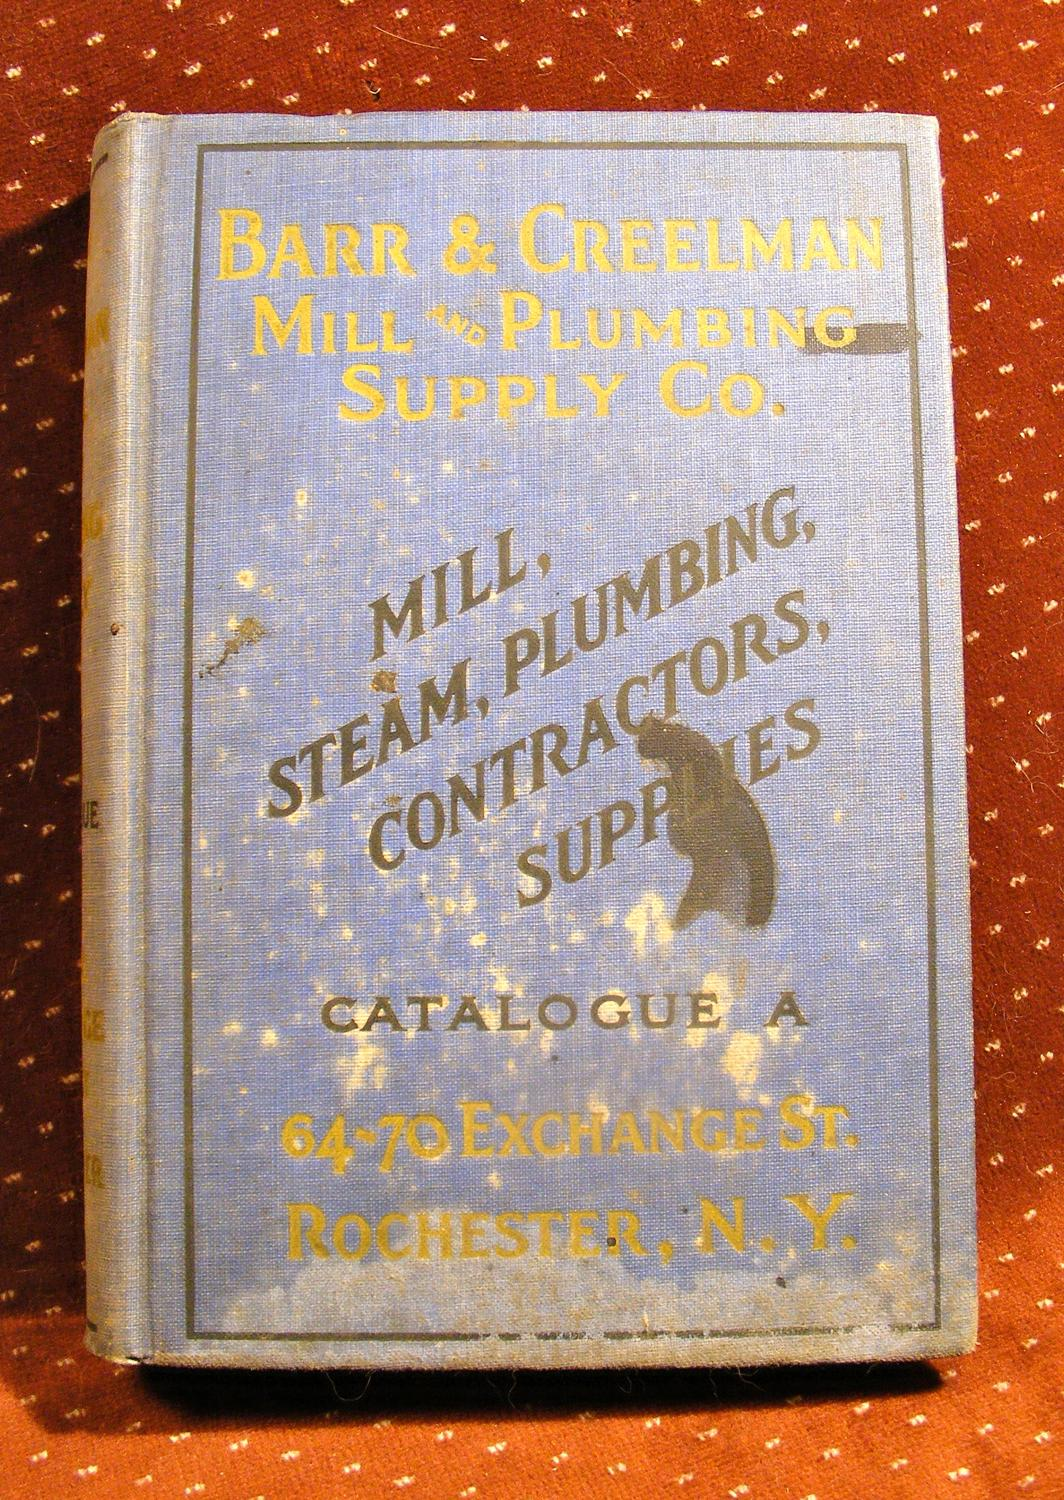 Barr & Creelman Mill and Plumbing Supply Co. General Supplies Catalog A - 1924   [Moyen] [Couverture rigide] 9.25  X 6.5  in blue cloth. Covers are heavily discolored and soiled, but binding is still secure. Pages excellent and unmarked: FAIR MINUS. 853pp of plumbing supplies like pipes, valves and fittings, boilers, drinking fountains, water systems, and so forth plus hand and POWER tools, etc.